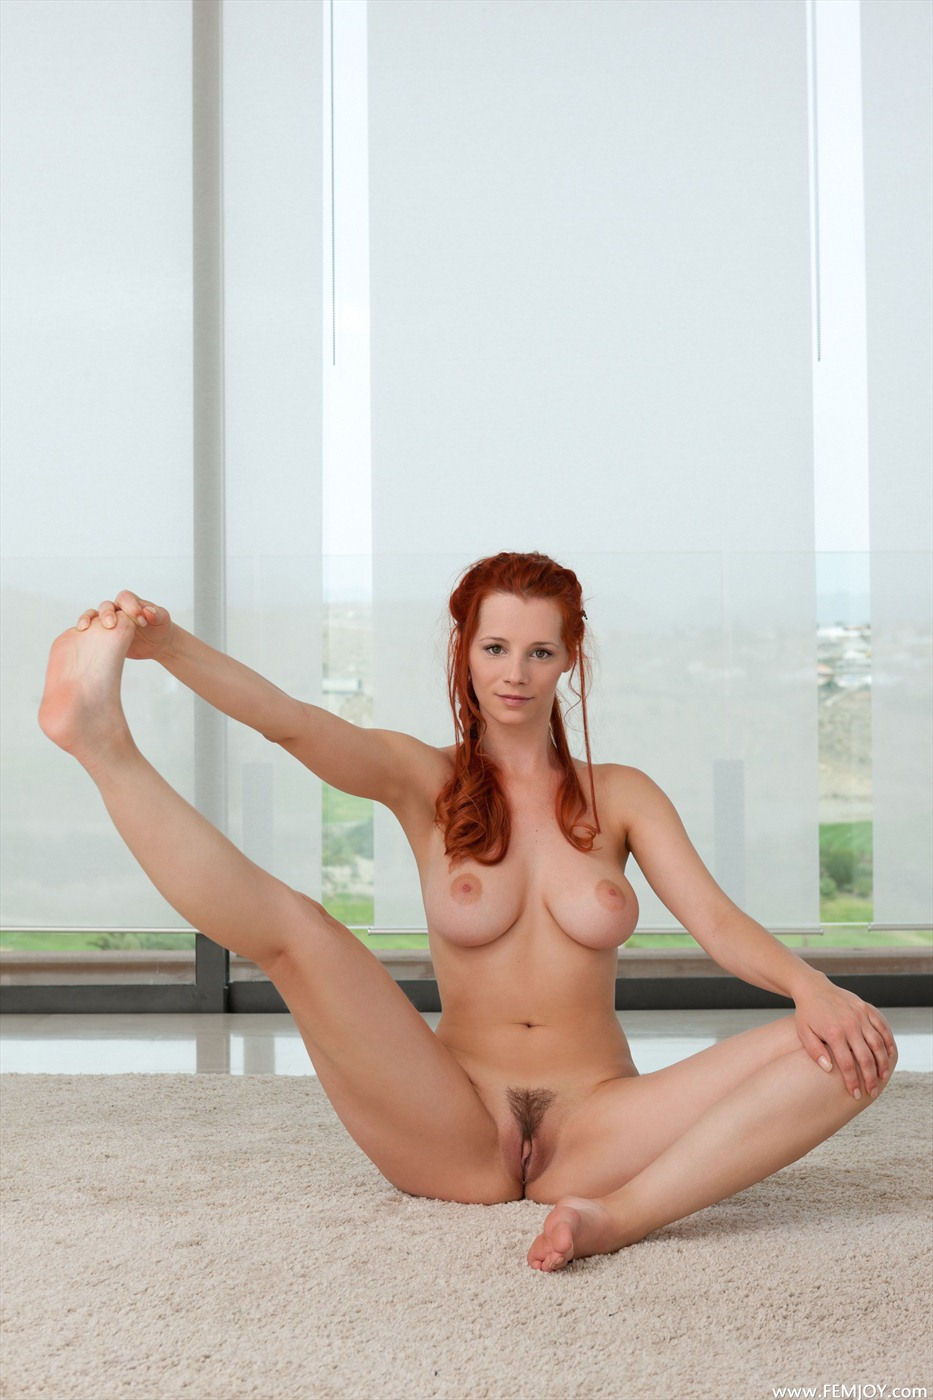 simply redhead pussy fucks herself camsisexxxnet join. was and